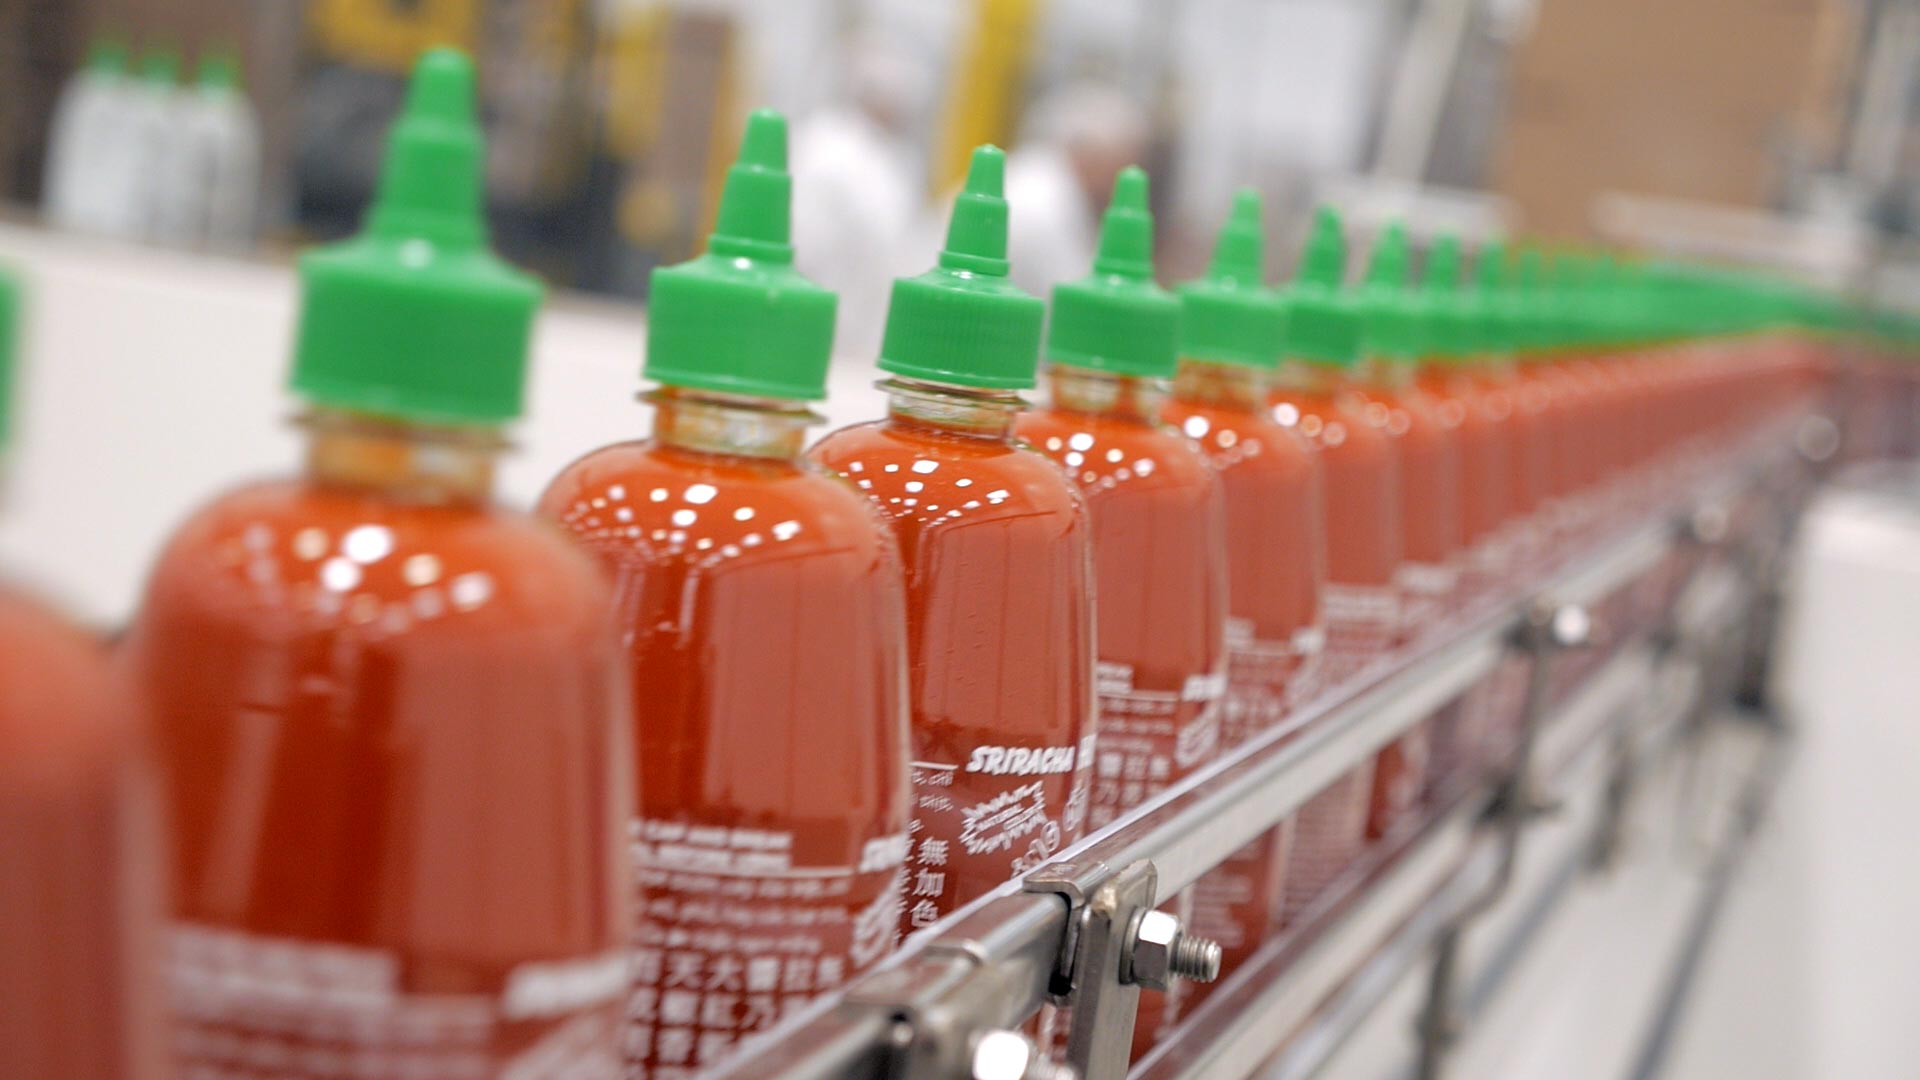 Sriracha factory. (Photo: Loa)